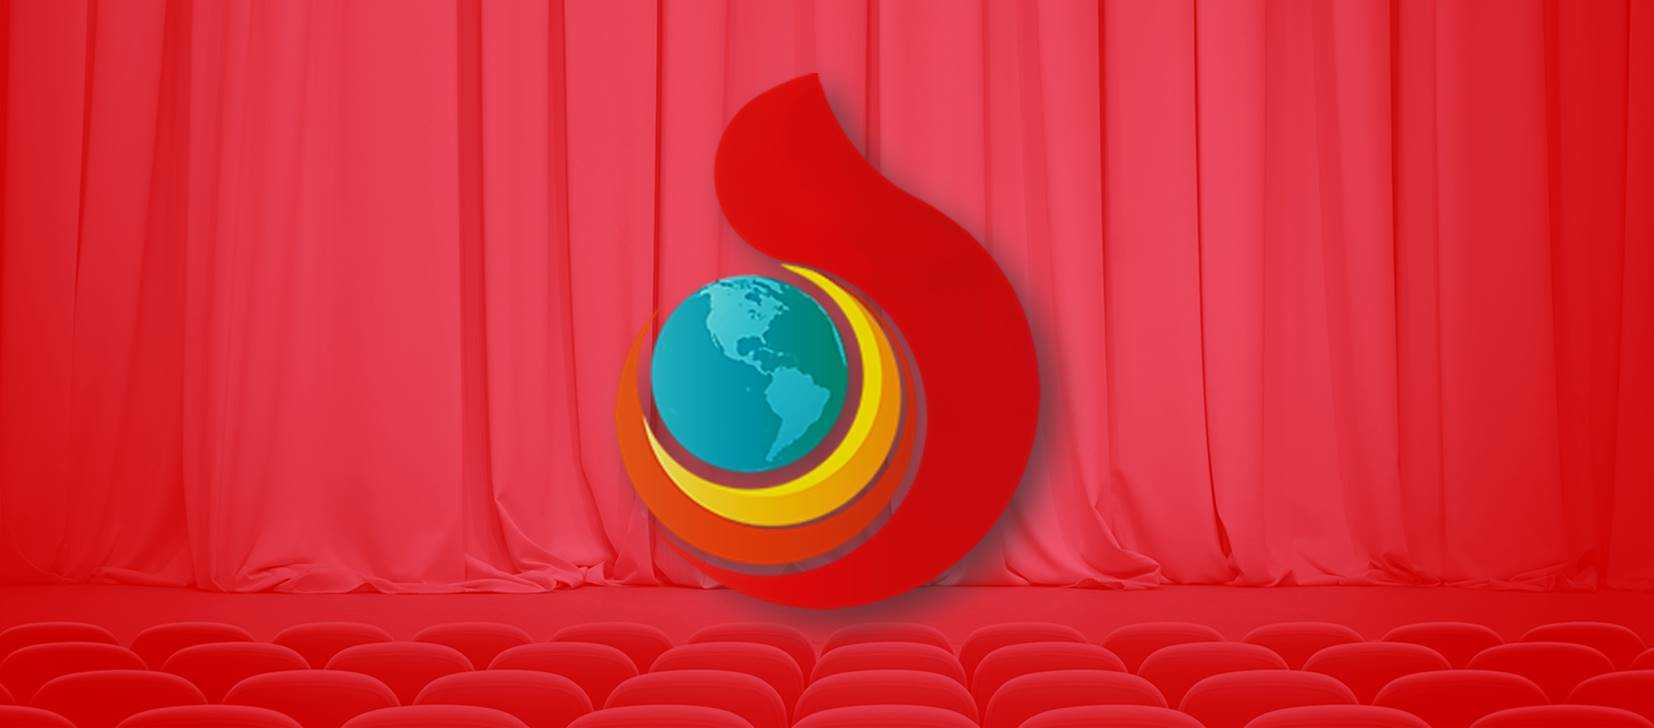 torch web browser 45.0.0.11172